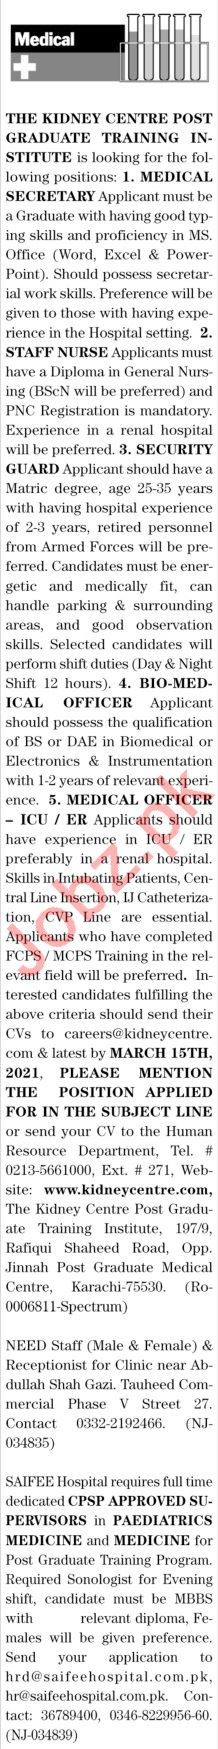 The News Sunday Classified Ads 28 Feb 2021 for Medical Staff